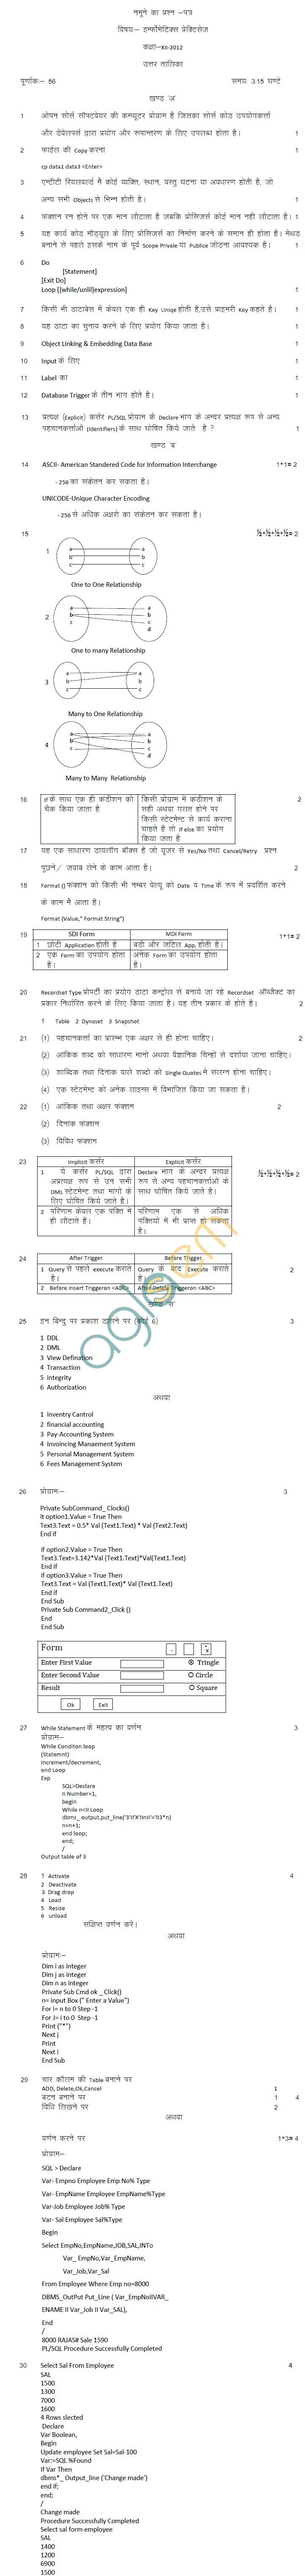 Rajasthan Board Class 12 Informatics Practices Model Question Paper